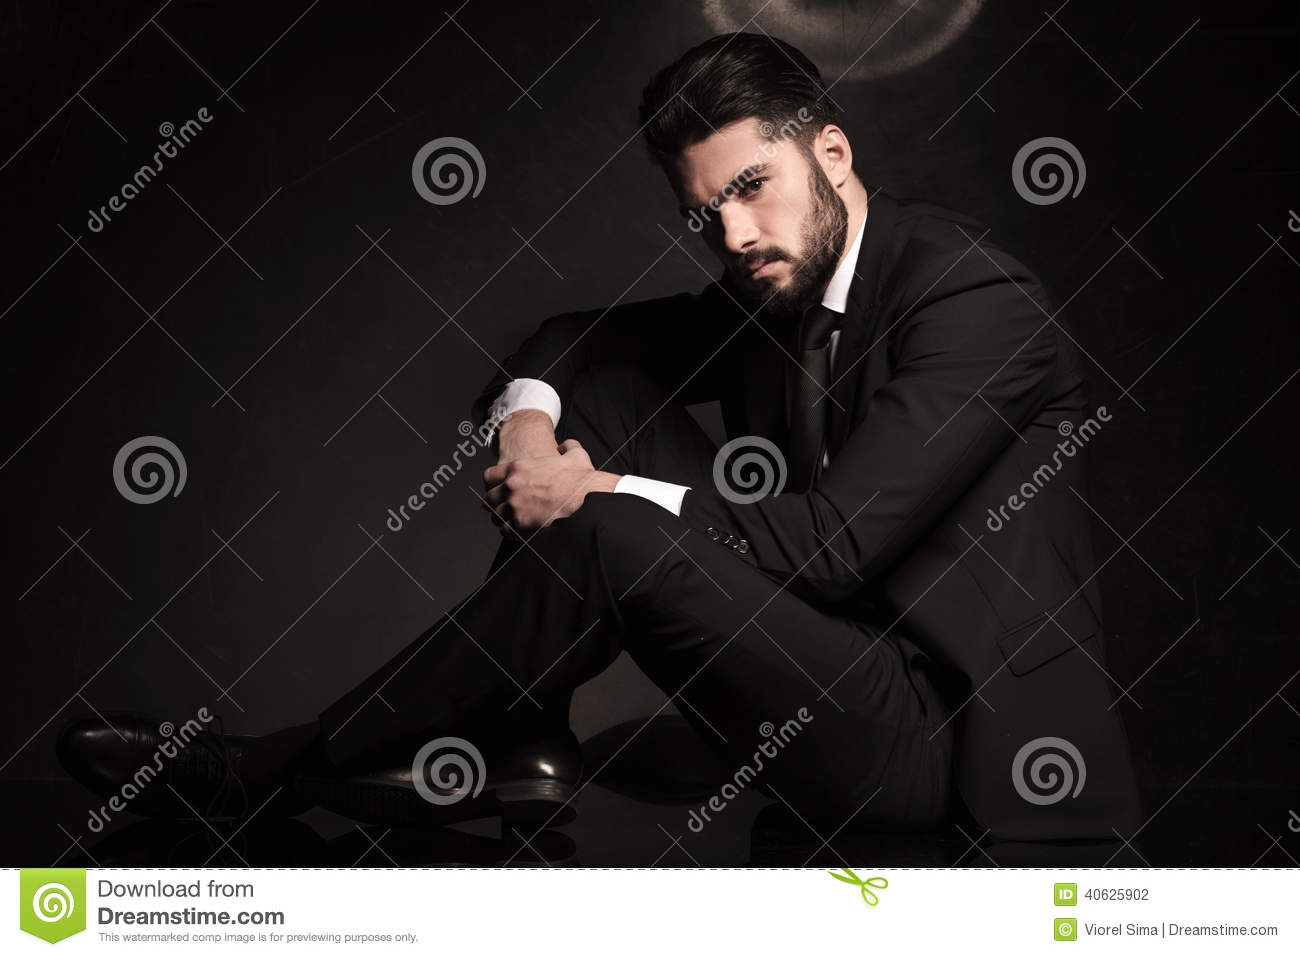 Dramatic business man sitting on the floor